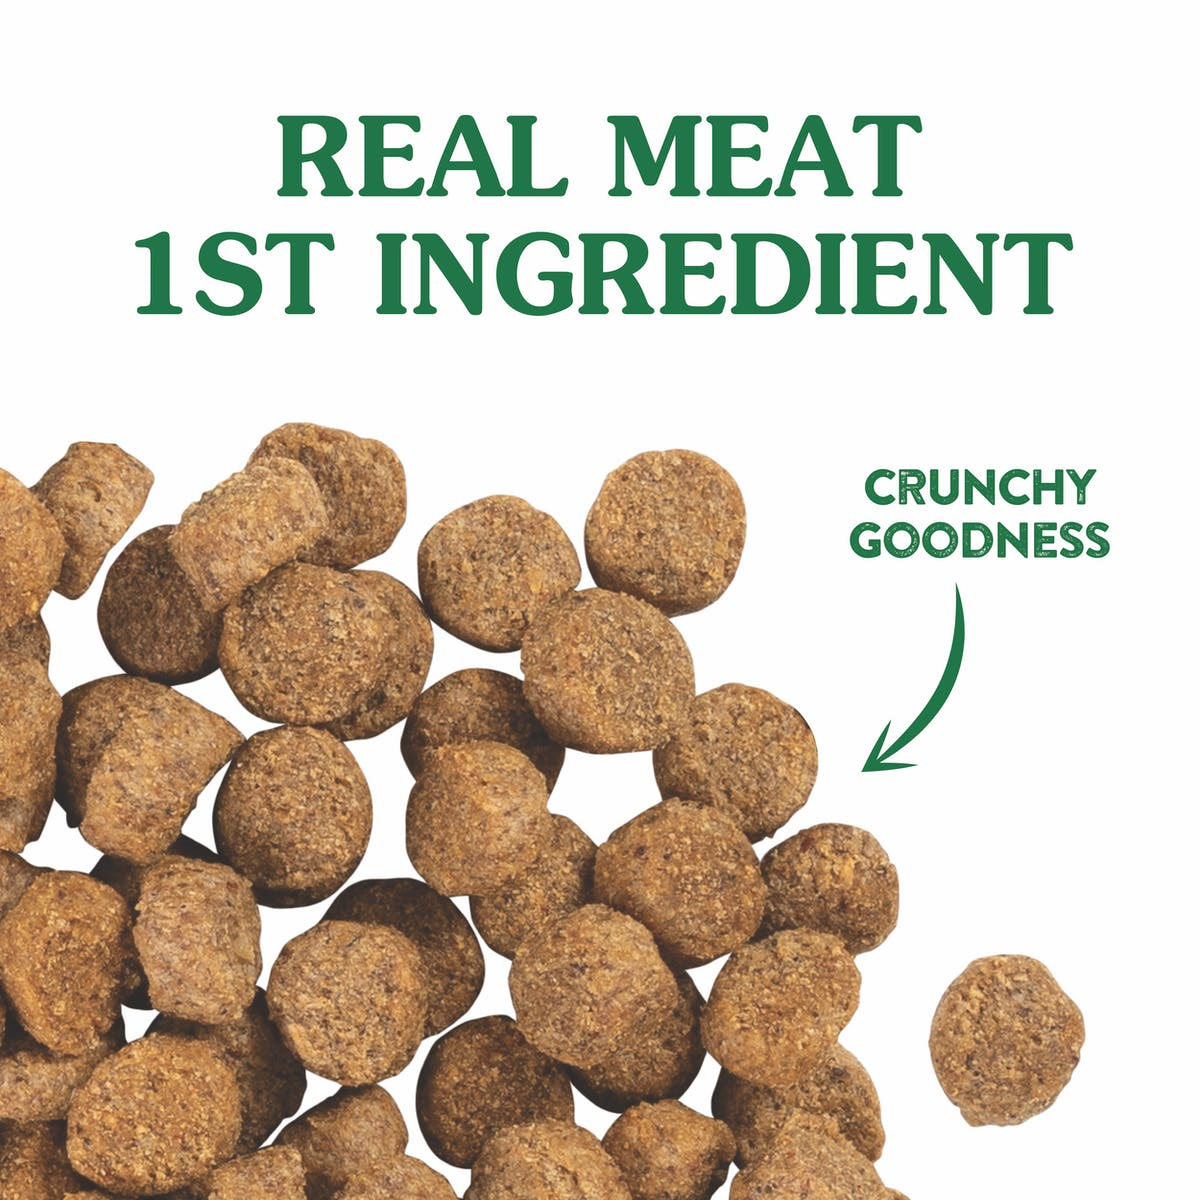 Nature's Gift | Chicken | Dry dog food | Left of pack